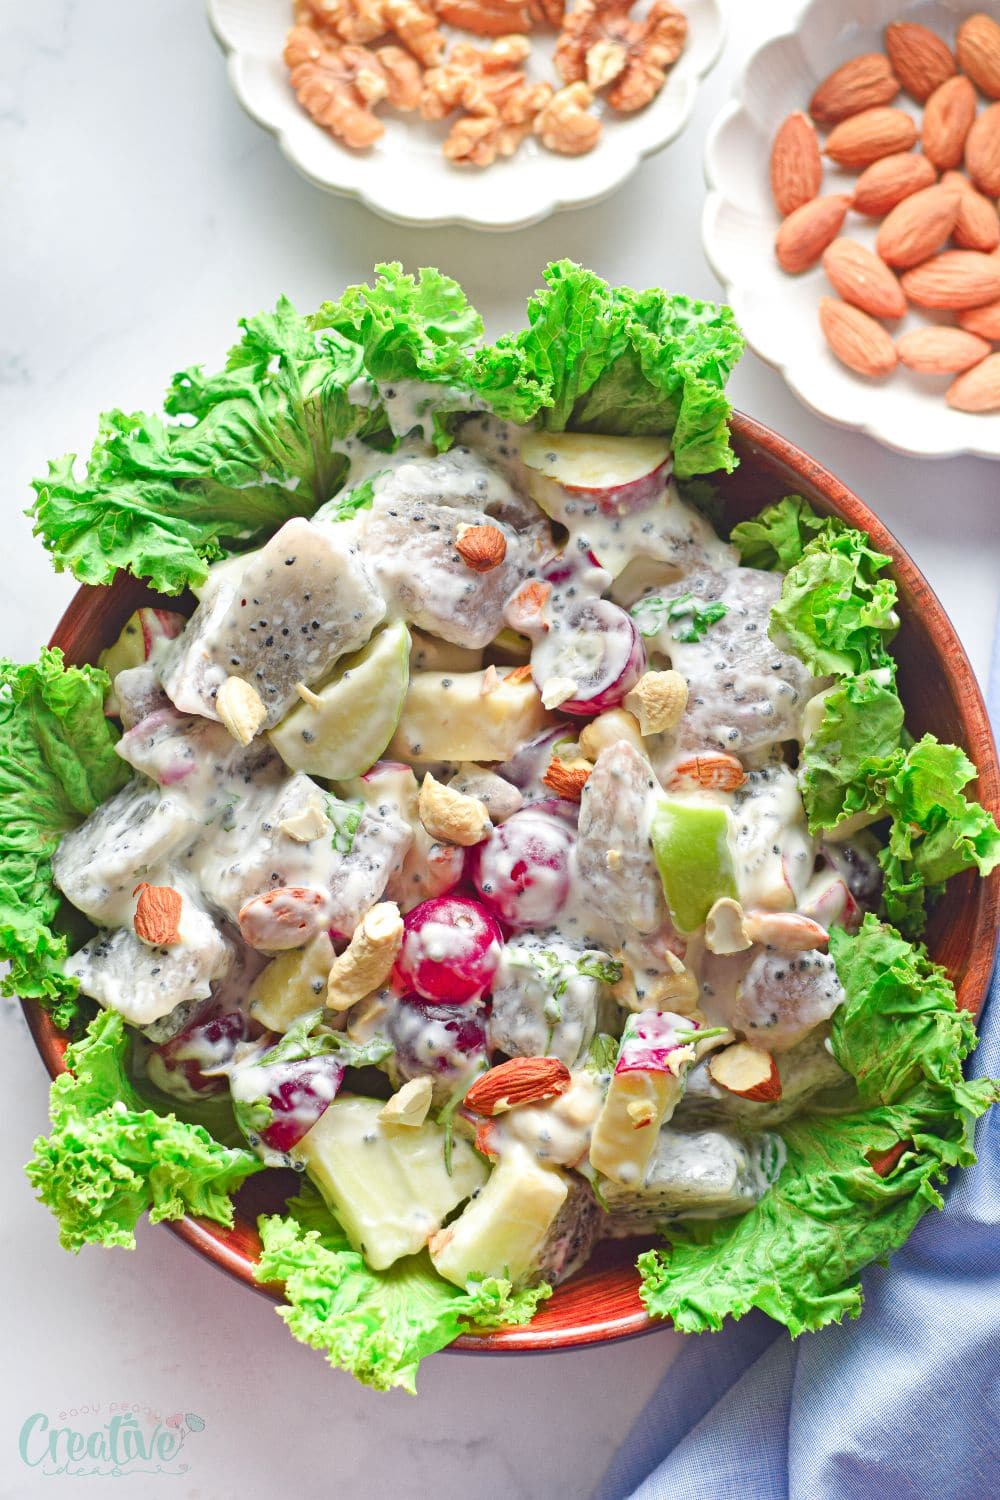 Top view of a brown salad bowl filled with dragon fruit salad made in the Waldorf salad style